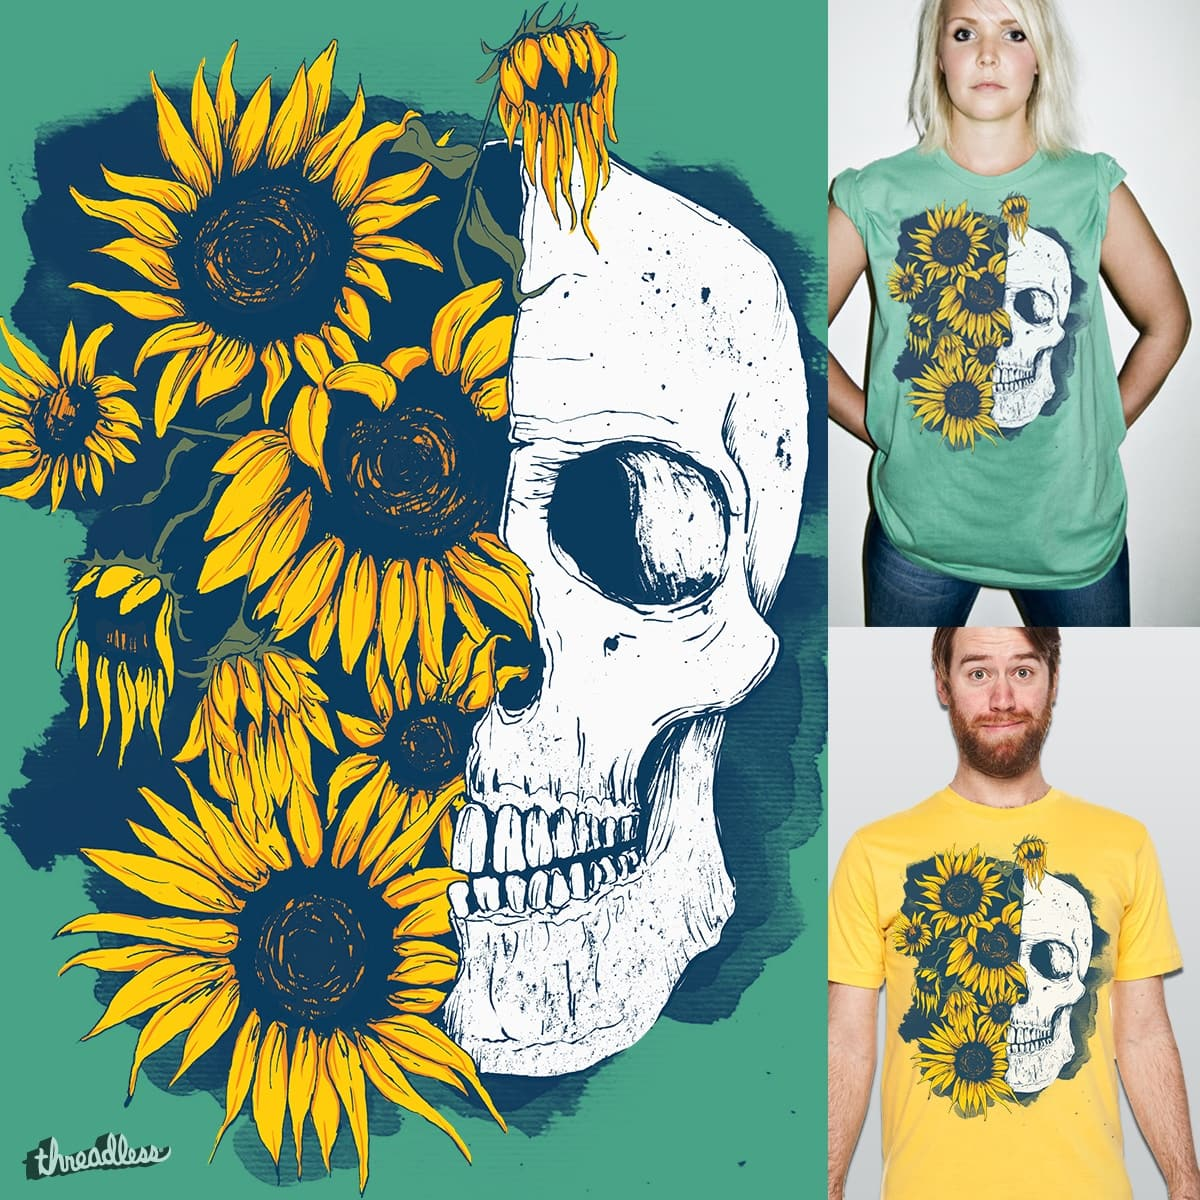 sunflowers by silvestre.rodrigues.9 on Threadless